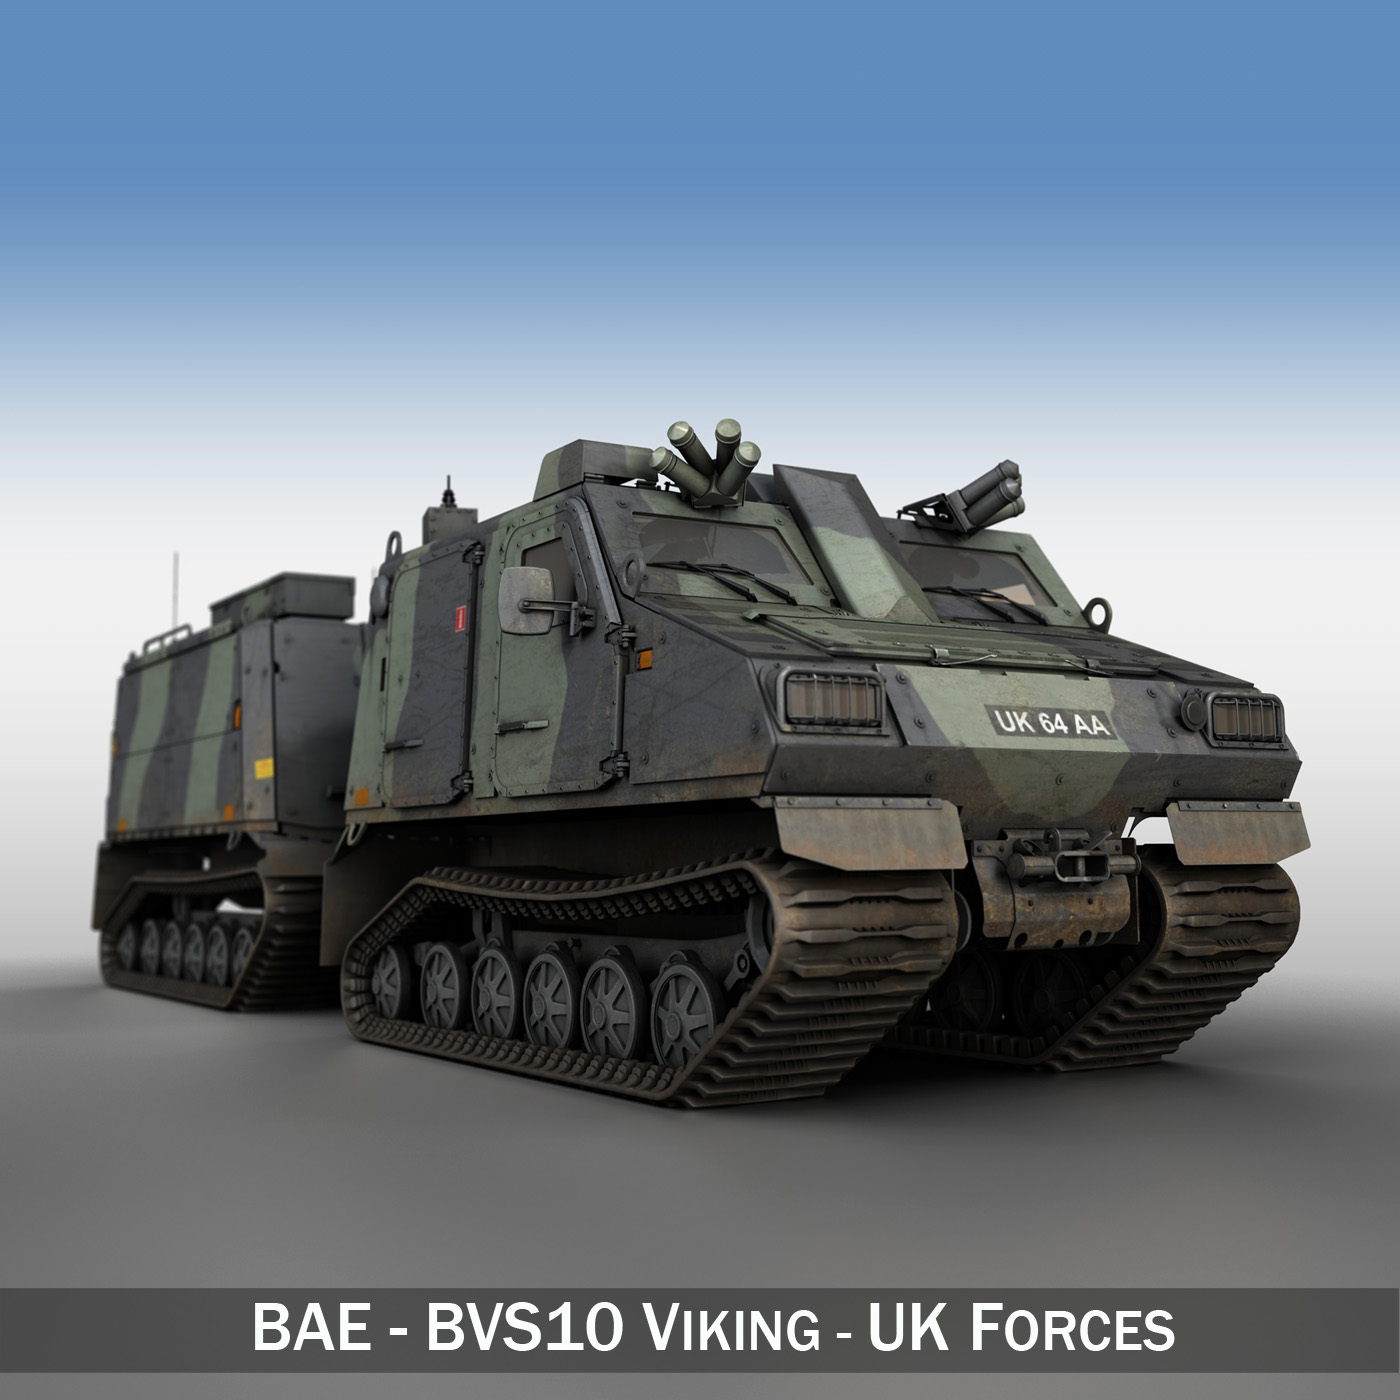 bvs10 viking - uk forces 3d model 3ds c4d texture obj 264249